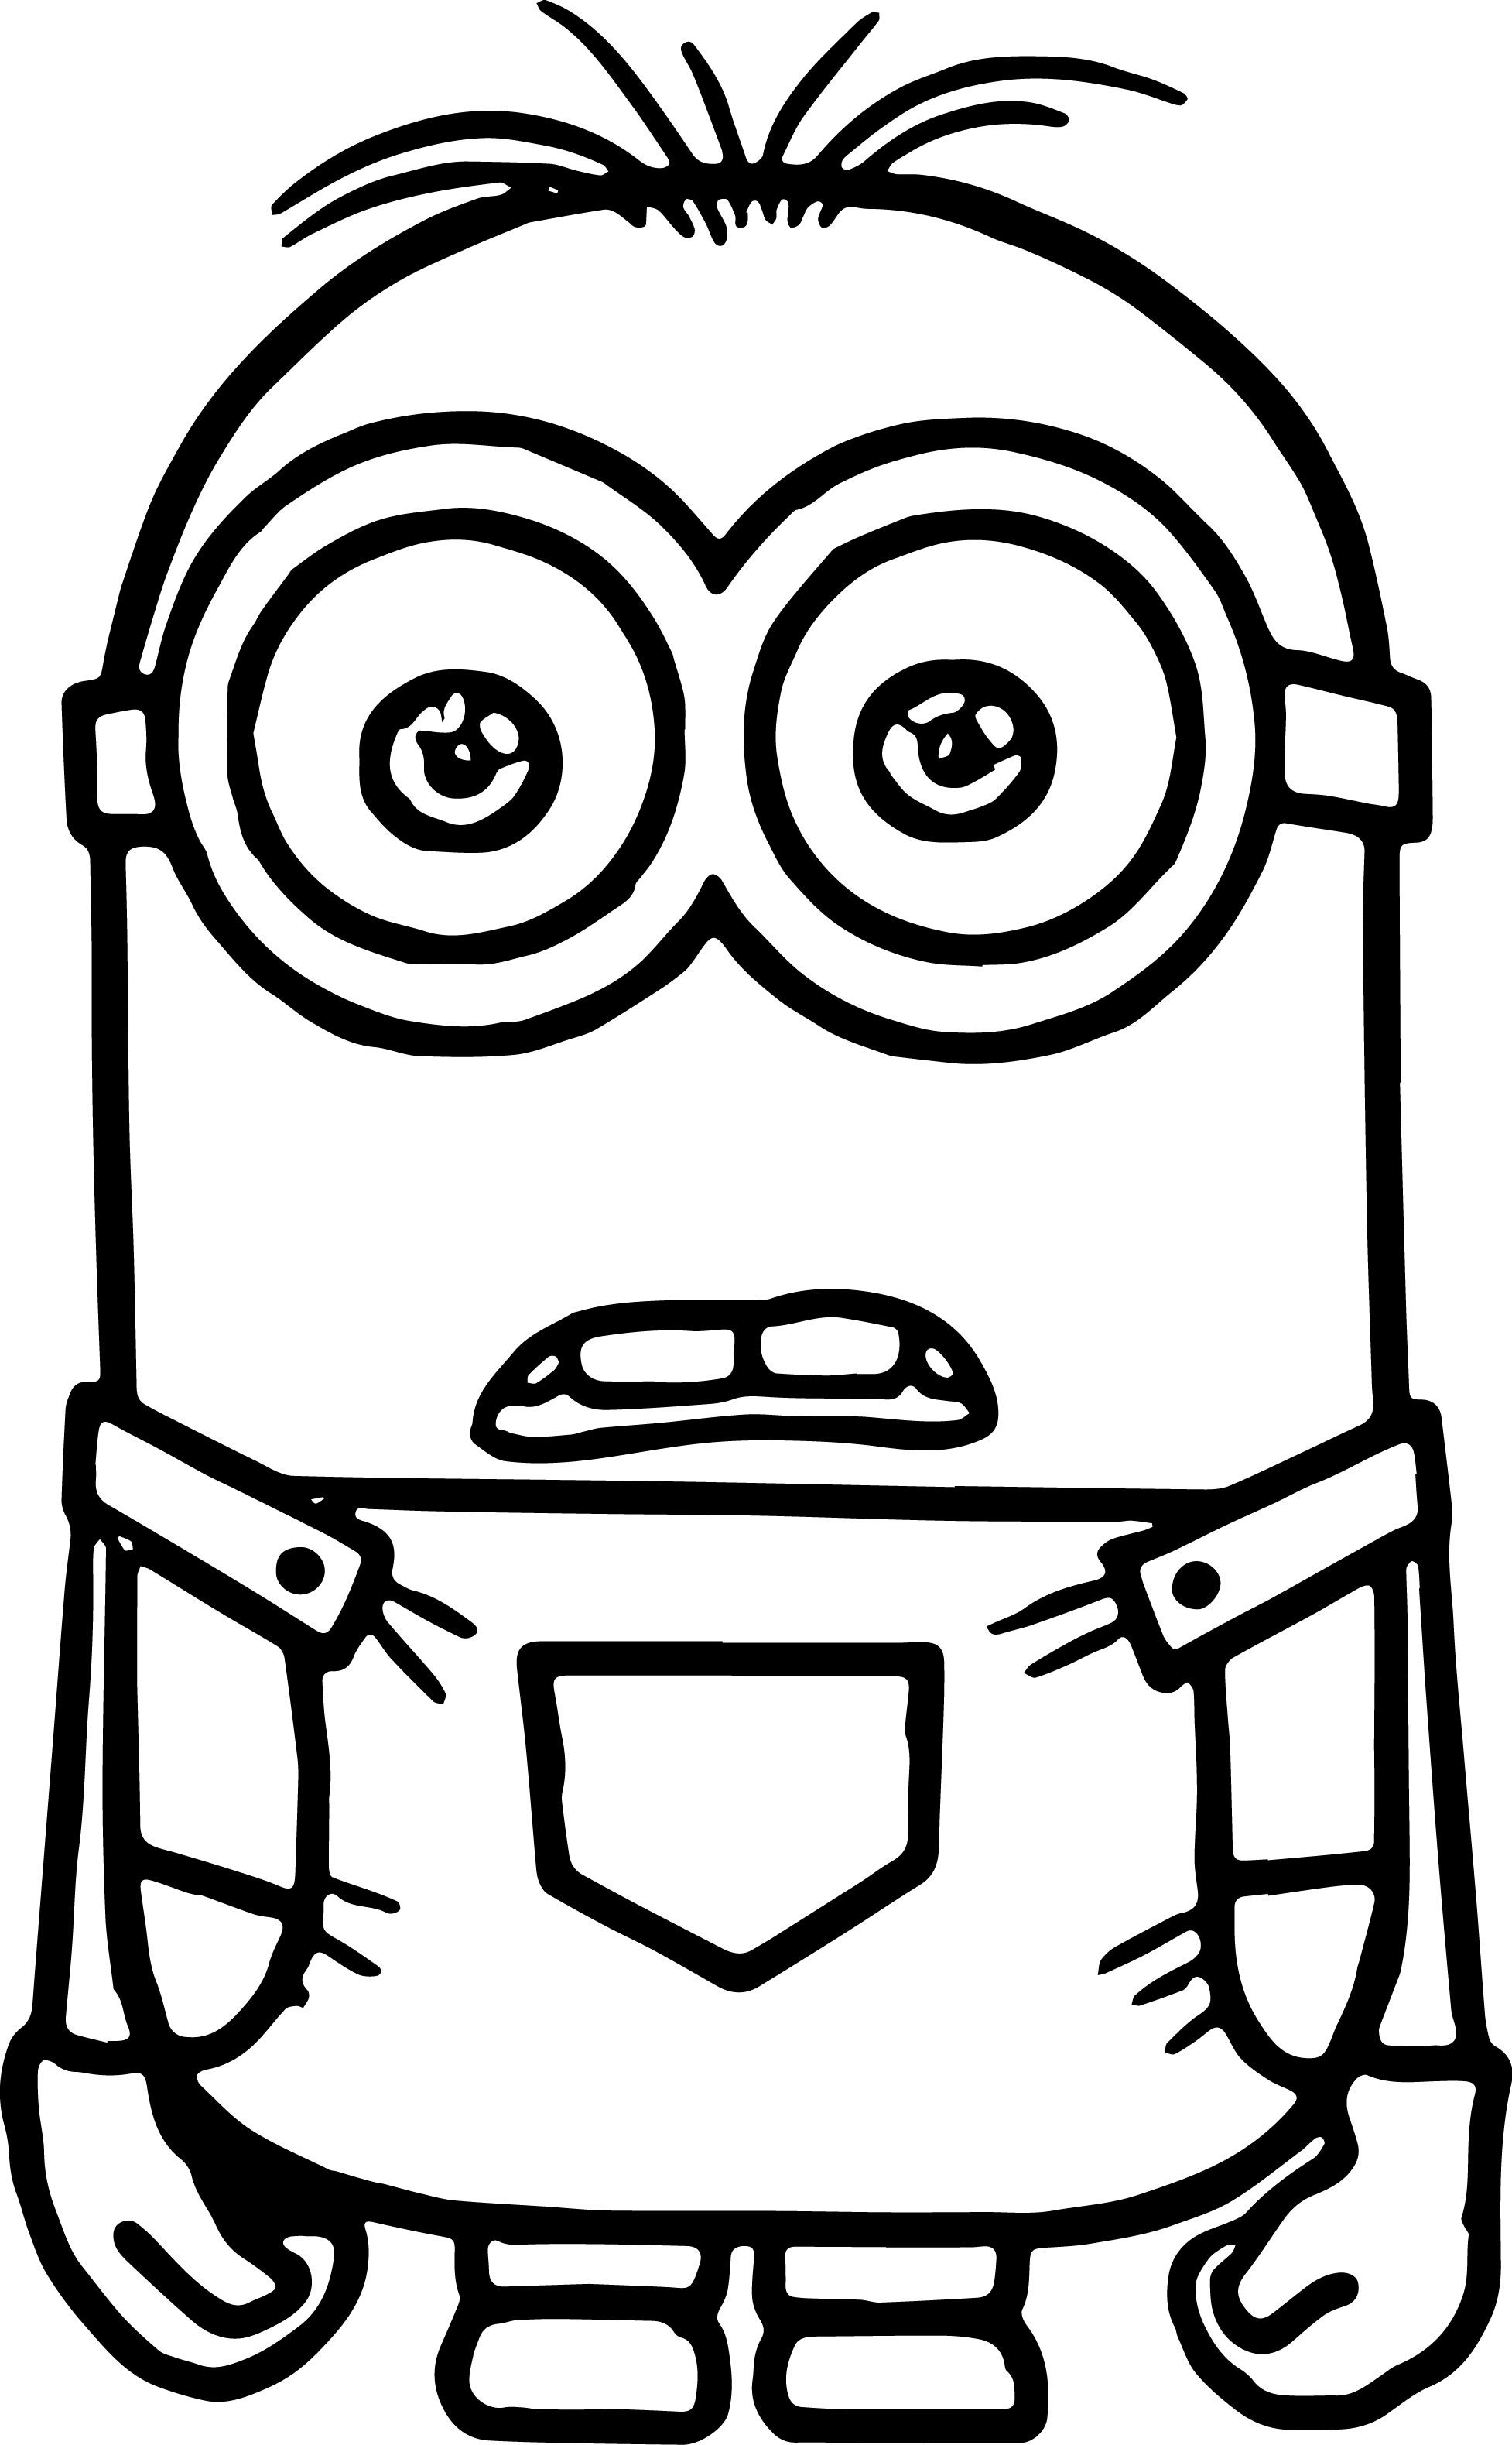 Minions Coloring Pages in 2018 | wecoloringpage | Pinterest | Minion ...